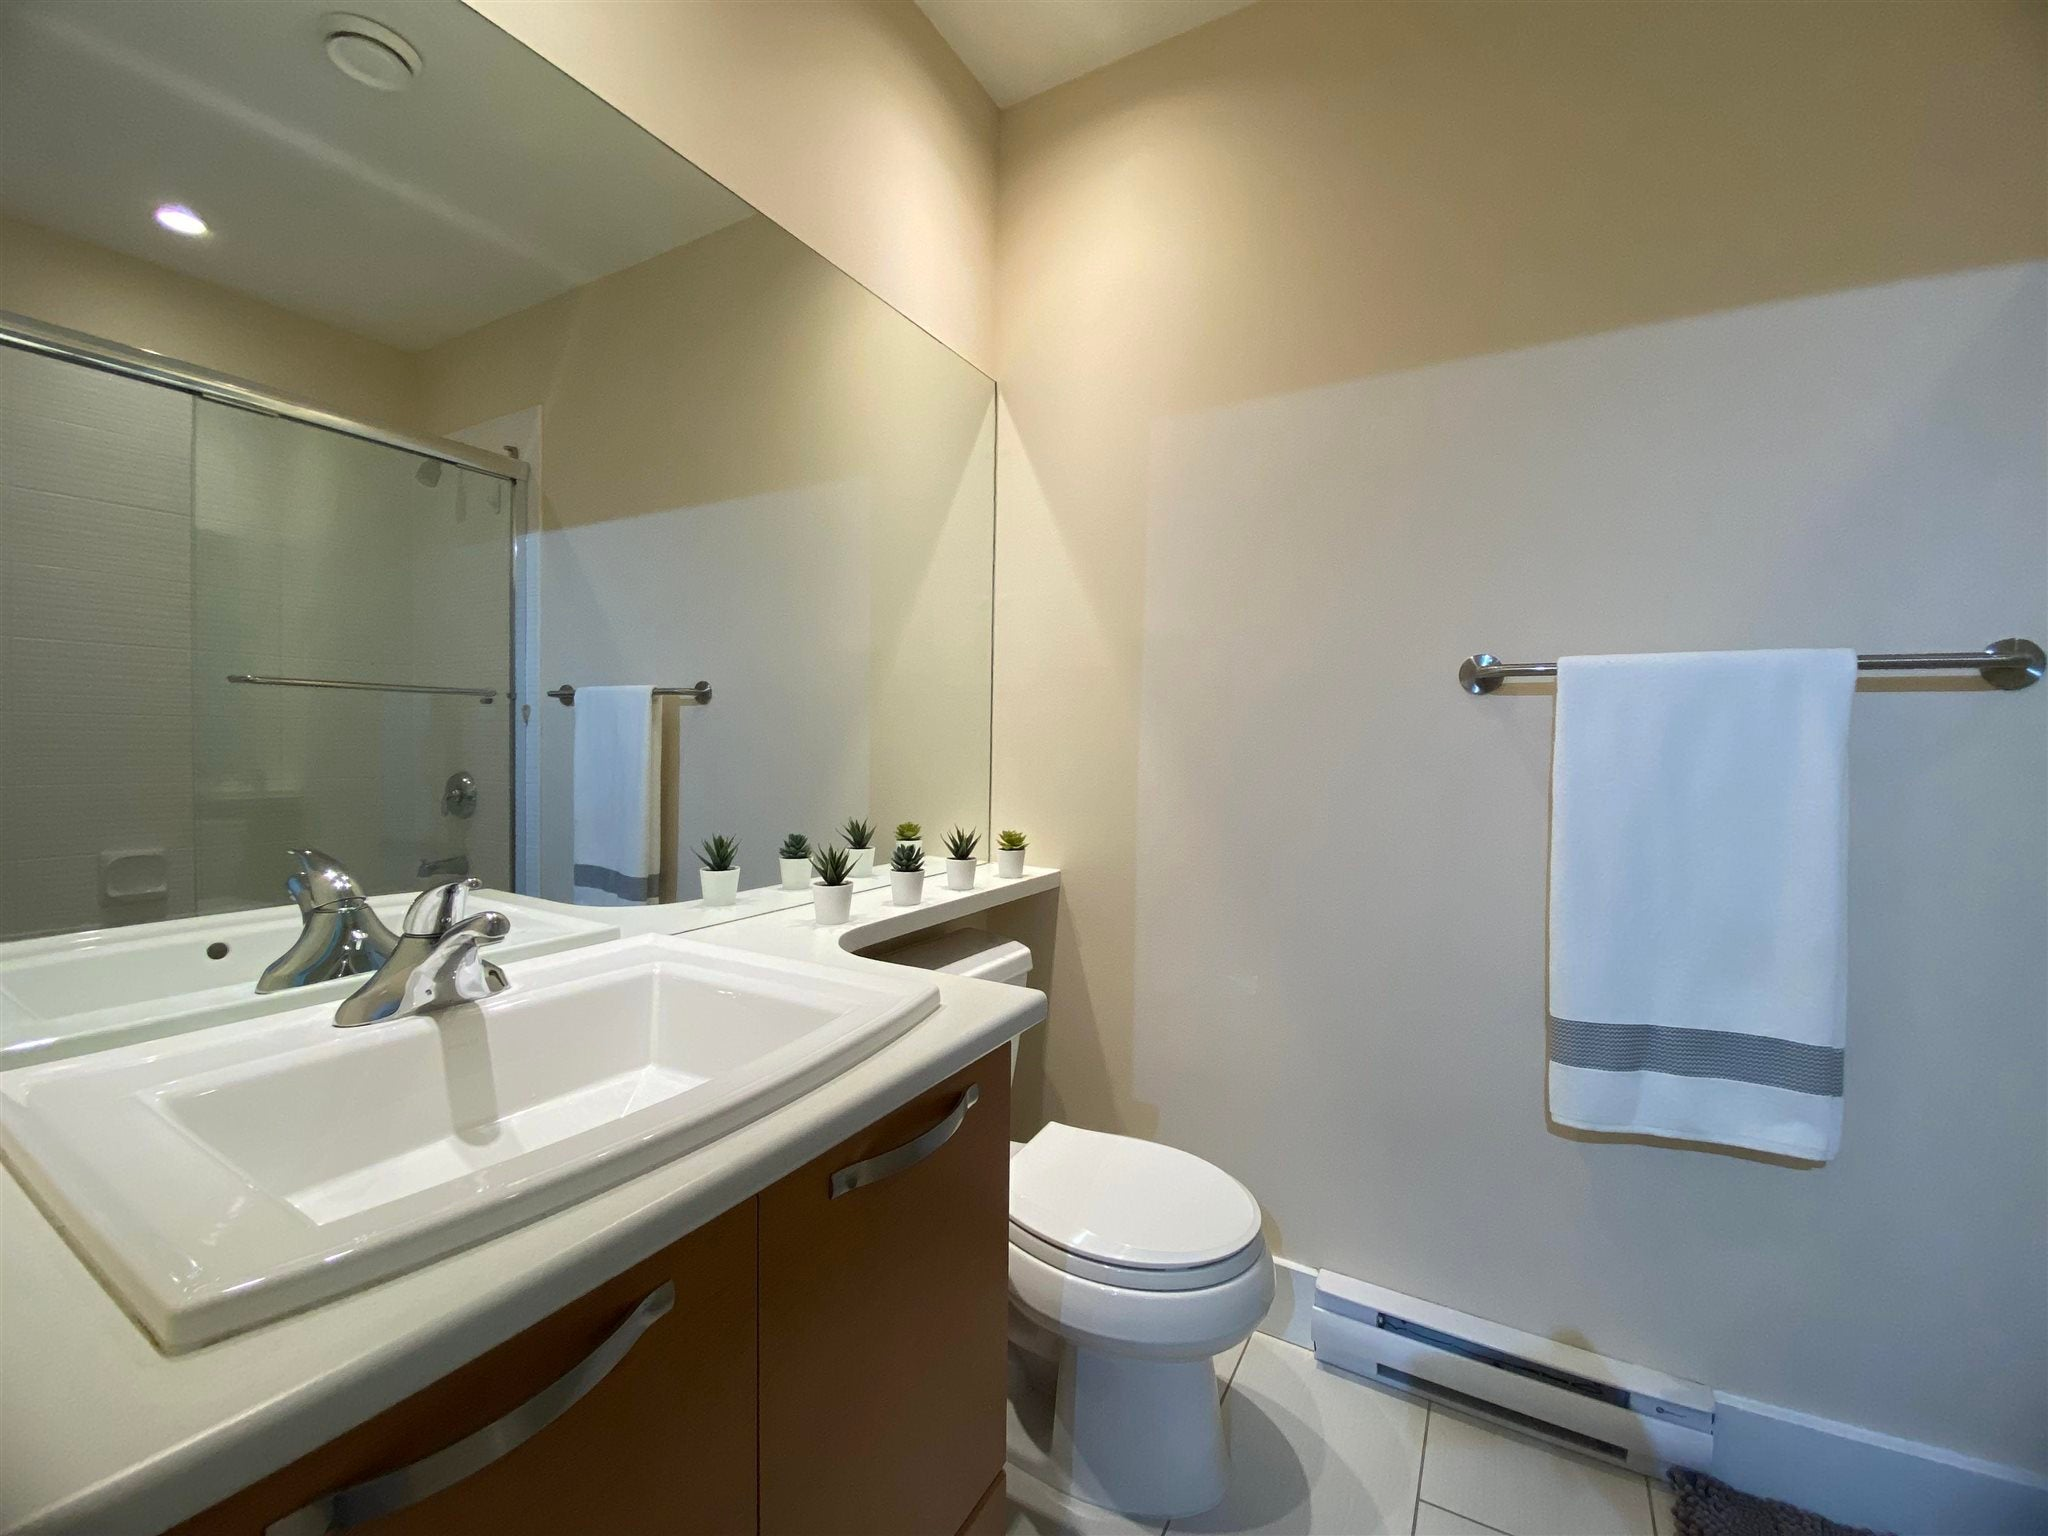 304 7428 BYRNEPARK WALK - South Slope Apartment/Condo for sale, 1 Bedroom (R2604124) - #11